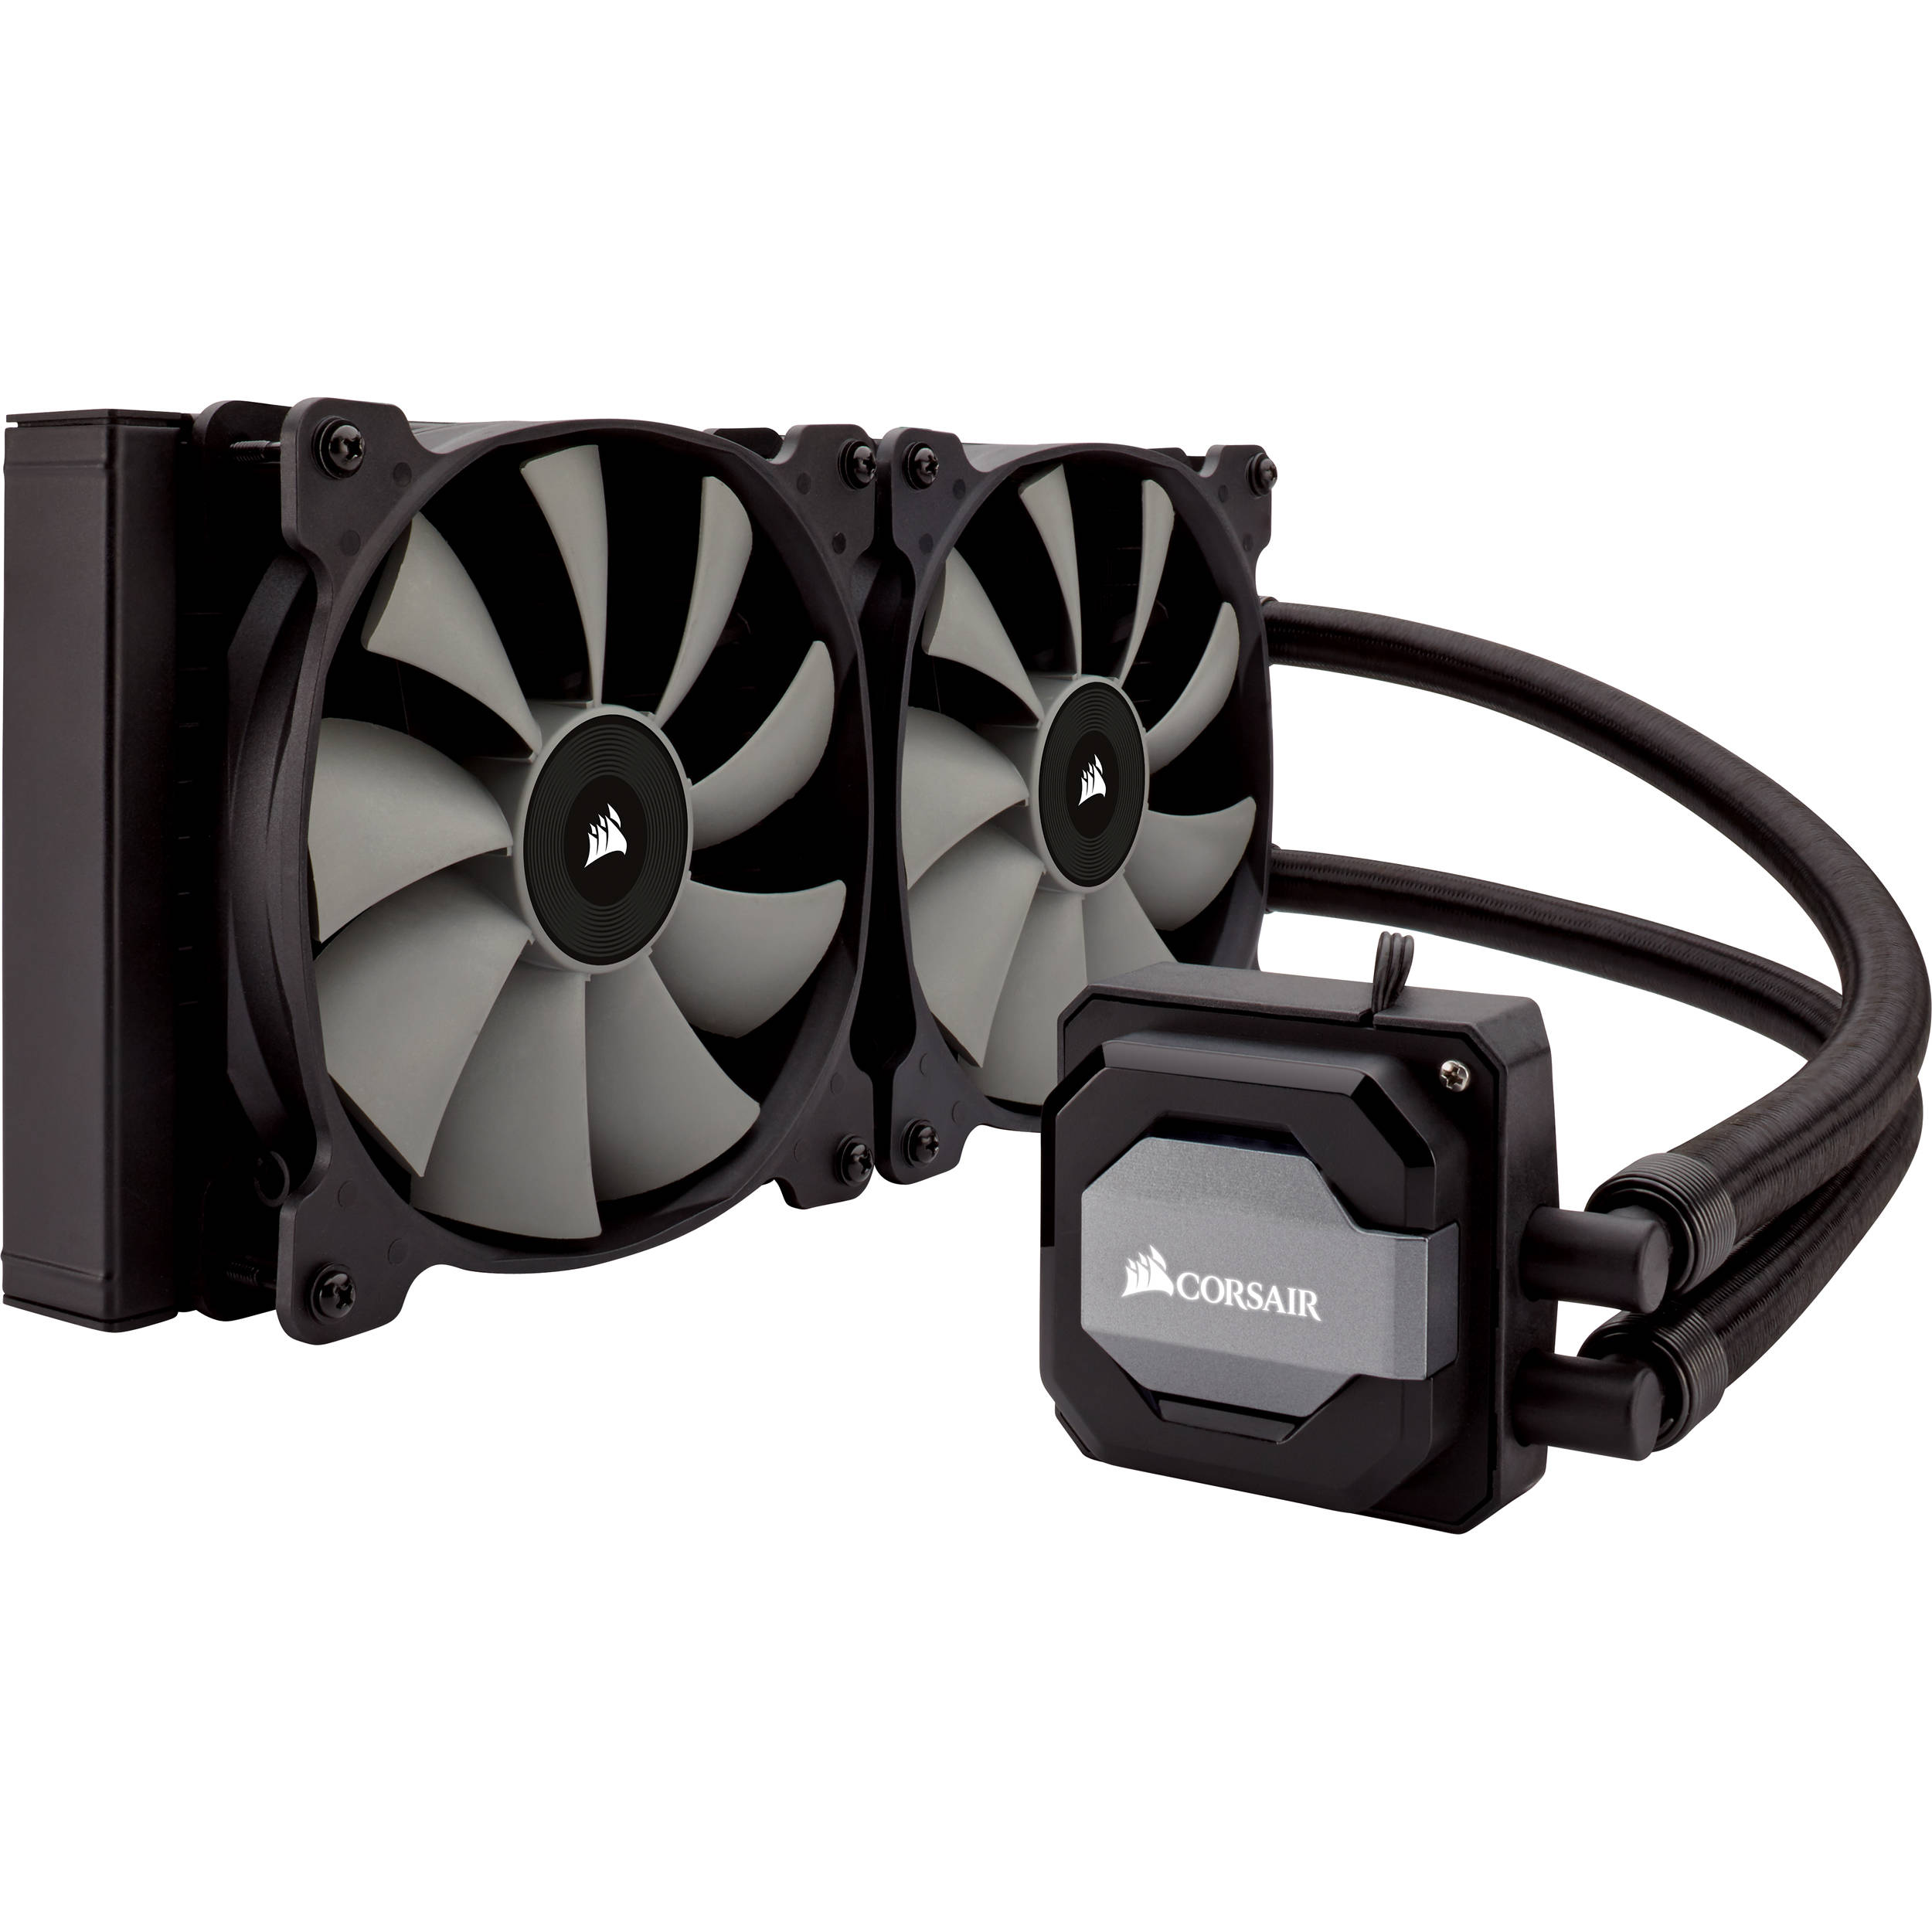 Compare Corsair Hydro Series H100i v2 Liquid CPU Cooler vs